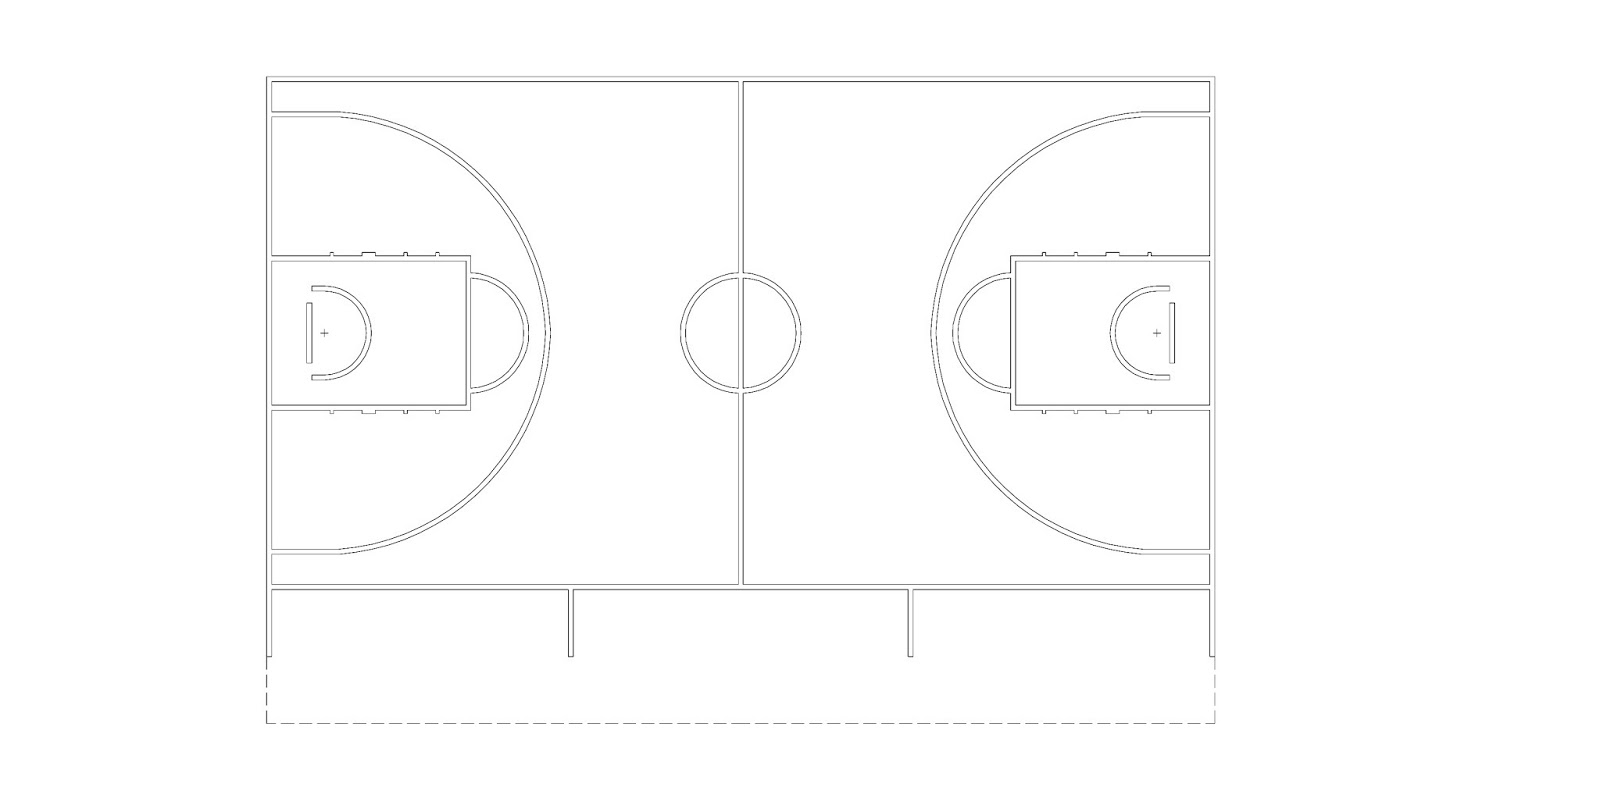 youth basketball court dimensions diagram large 7 pin round trailer plug wiring blank scores